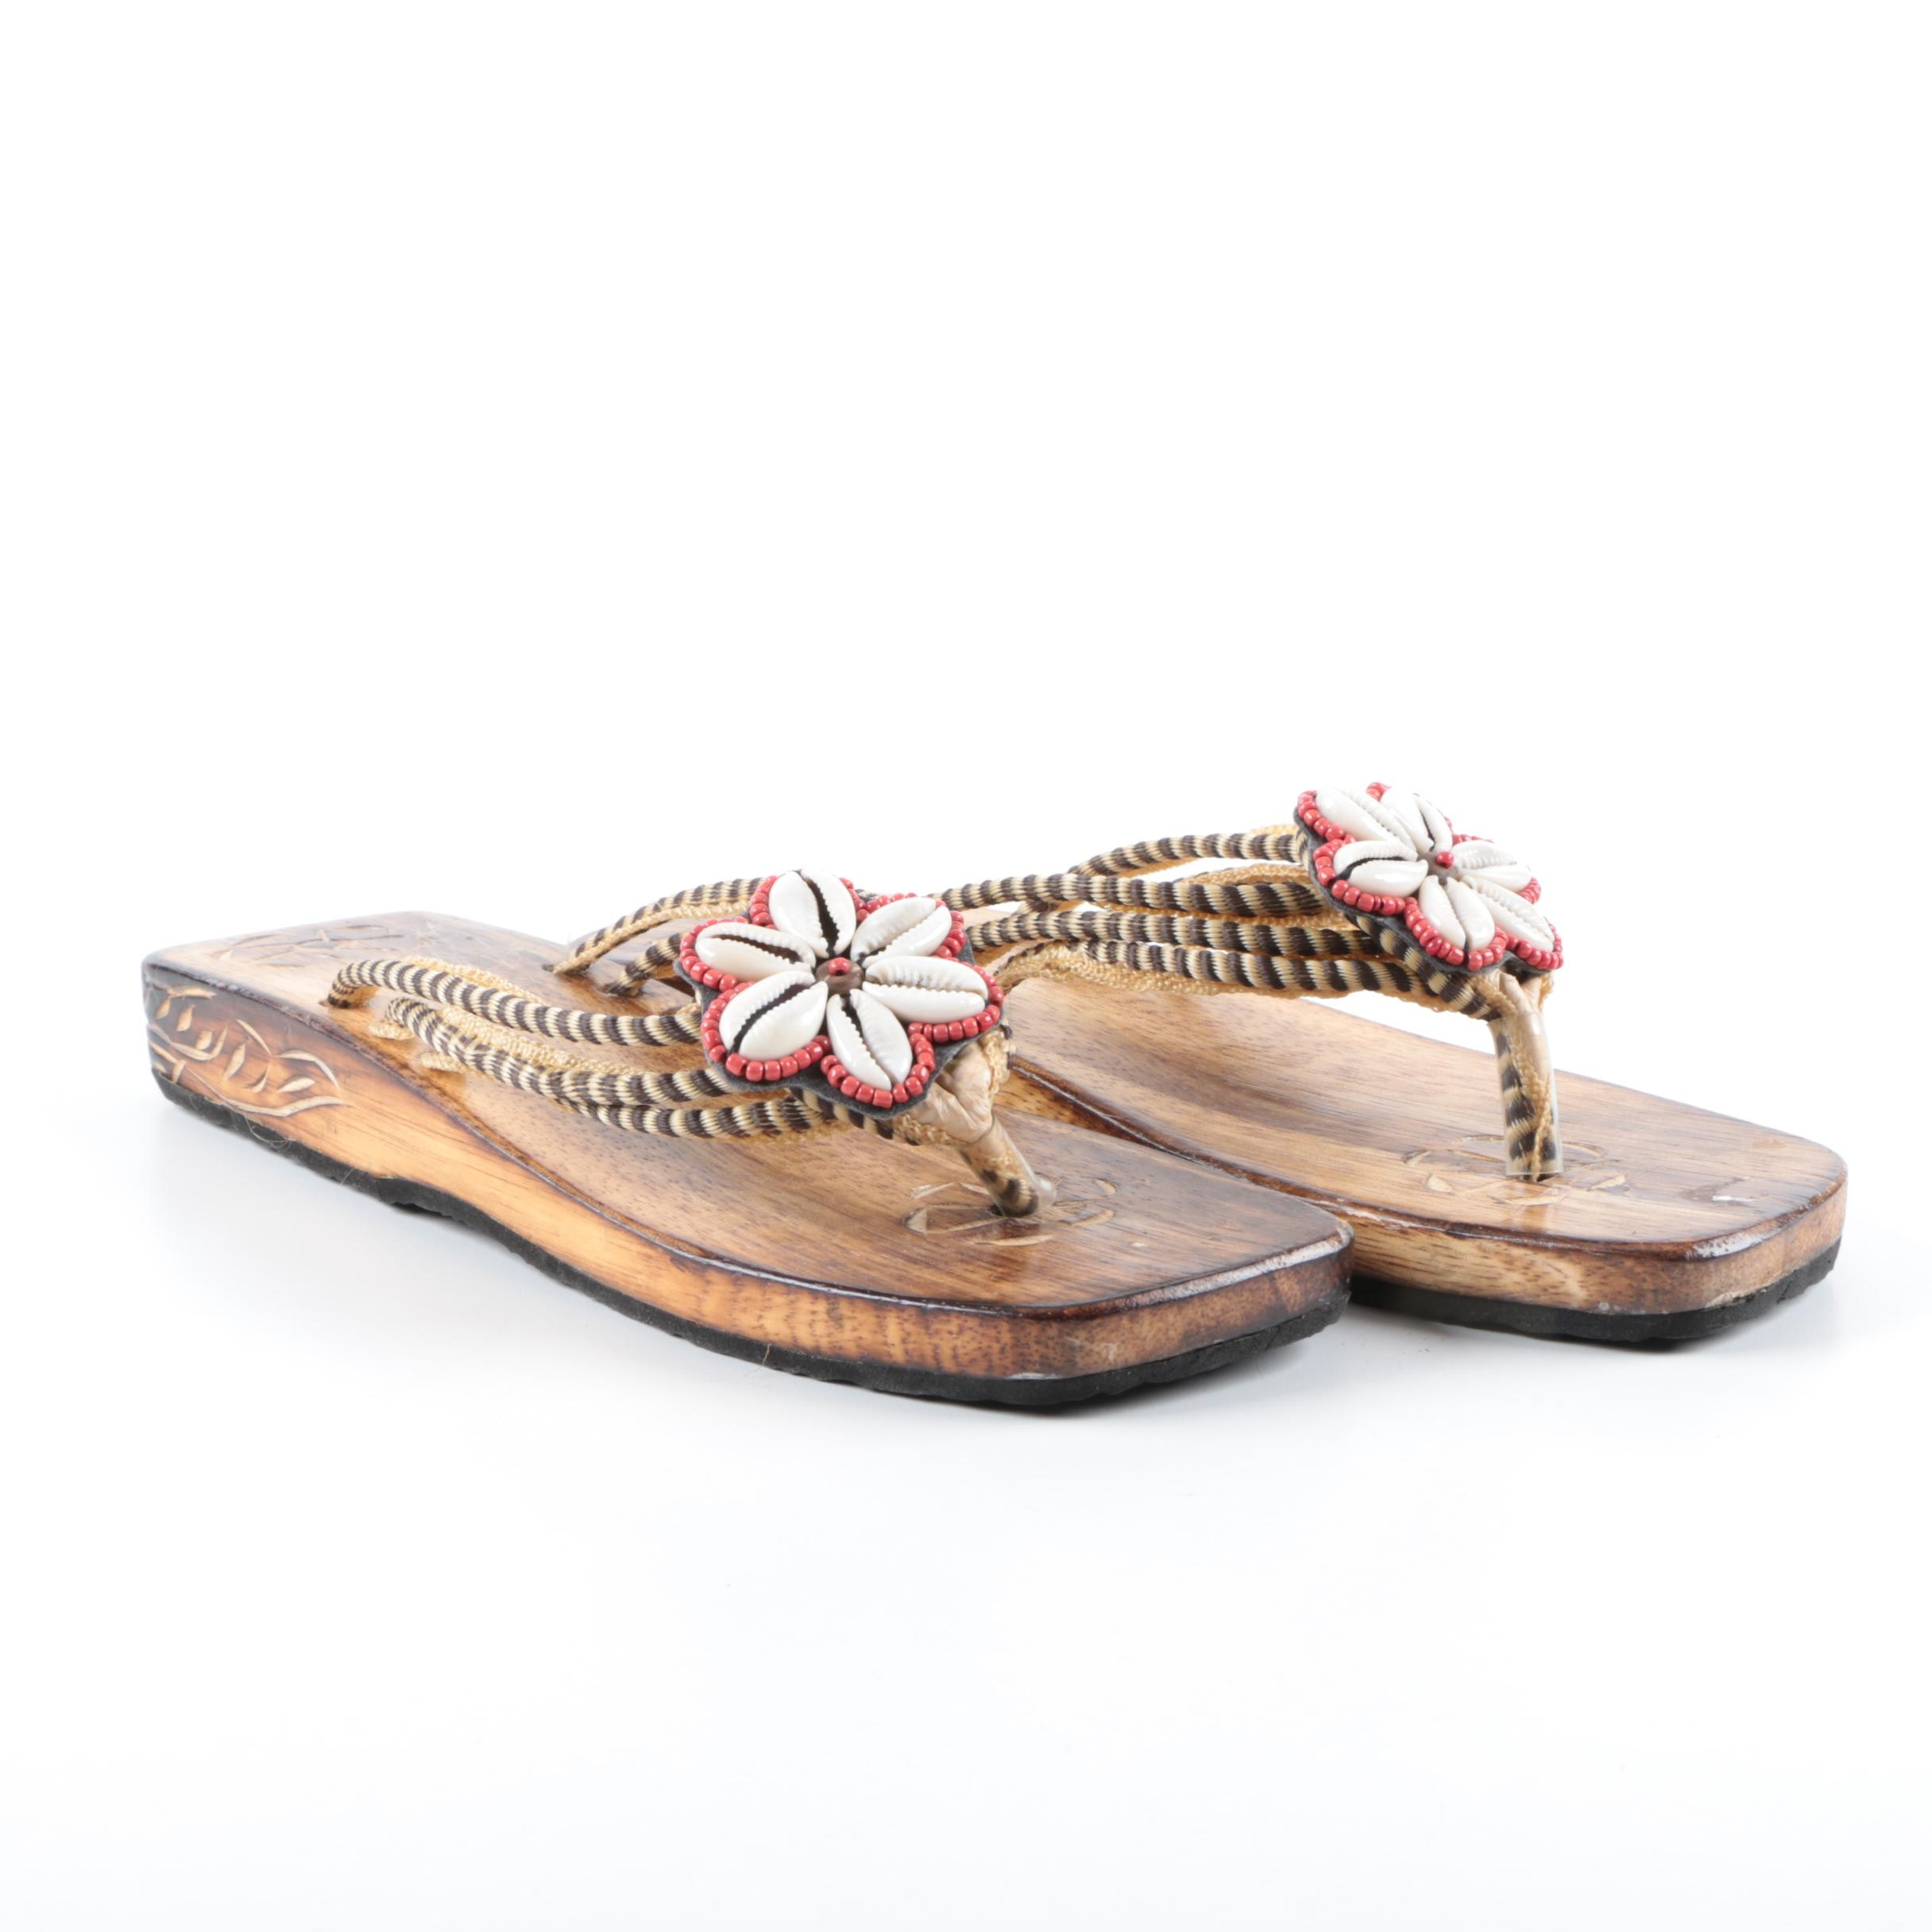 Shell Beaded Wooden Sandals